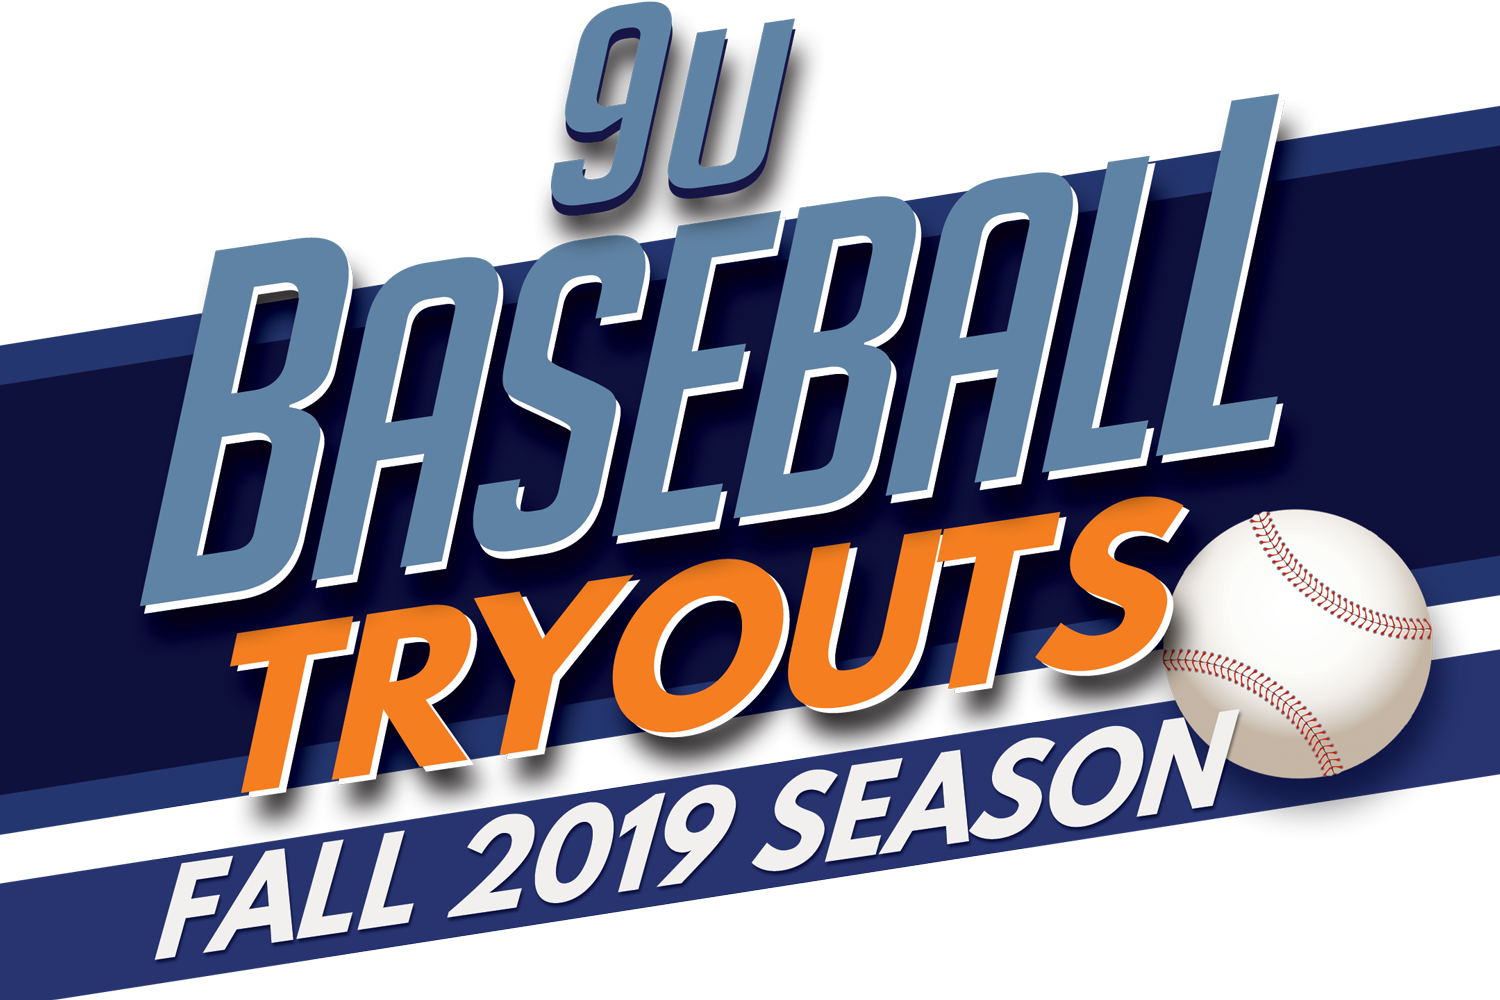 2019 Tryouts for the West Chester Dragons Travel Baseball Teams